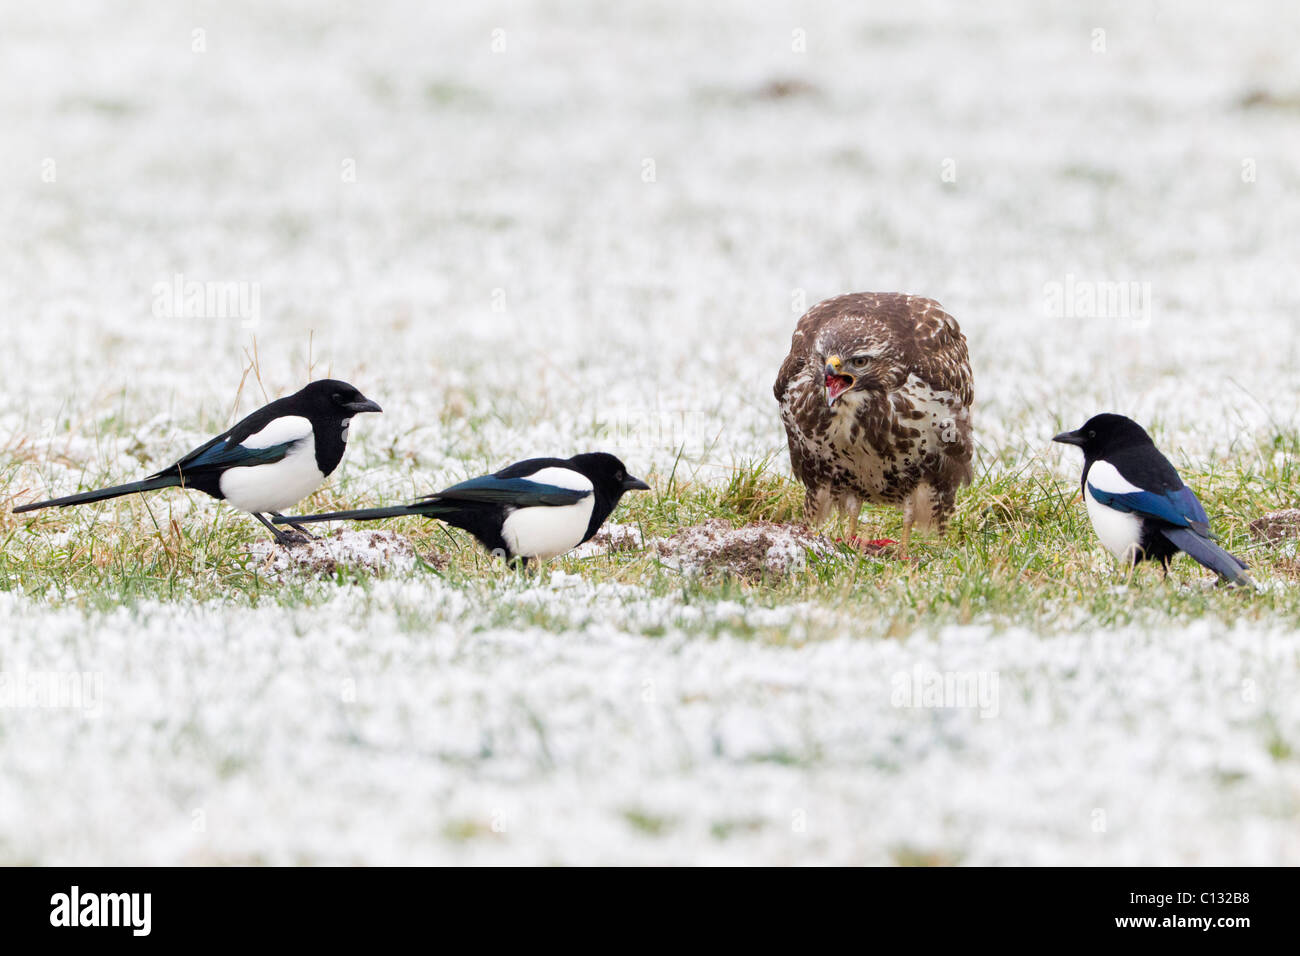 Common Buzzard (Buteo buteo), feeding on carrion and being harassed by Common Magpies (Pica pica) - Stock Image